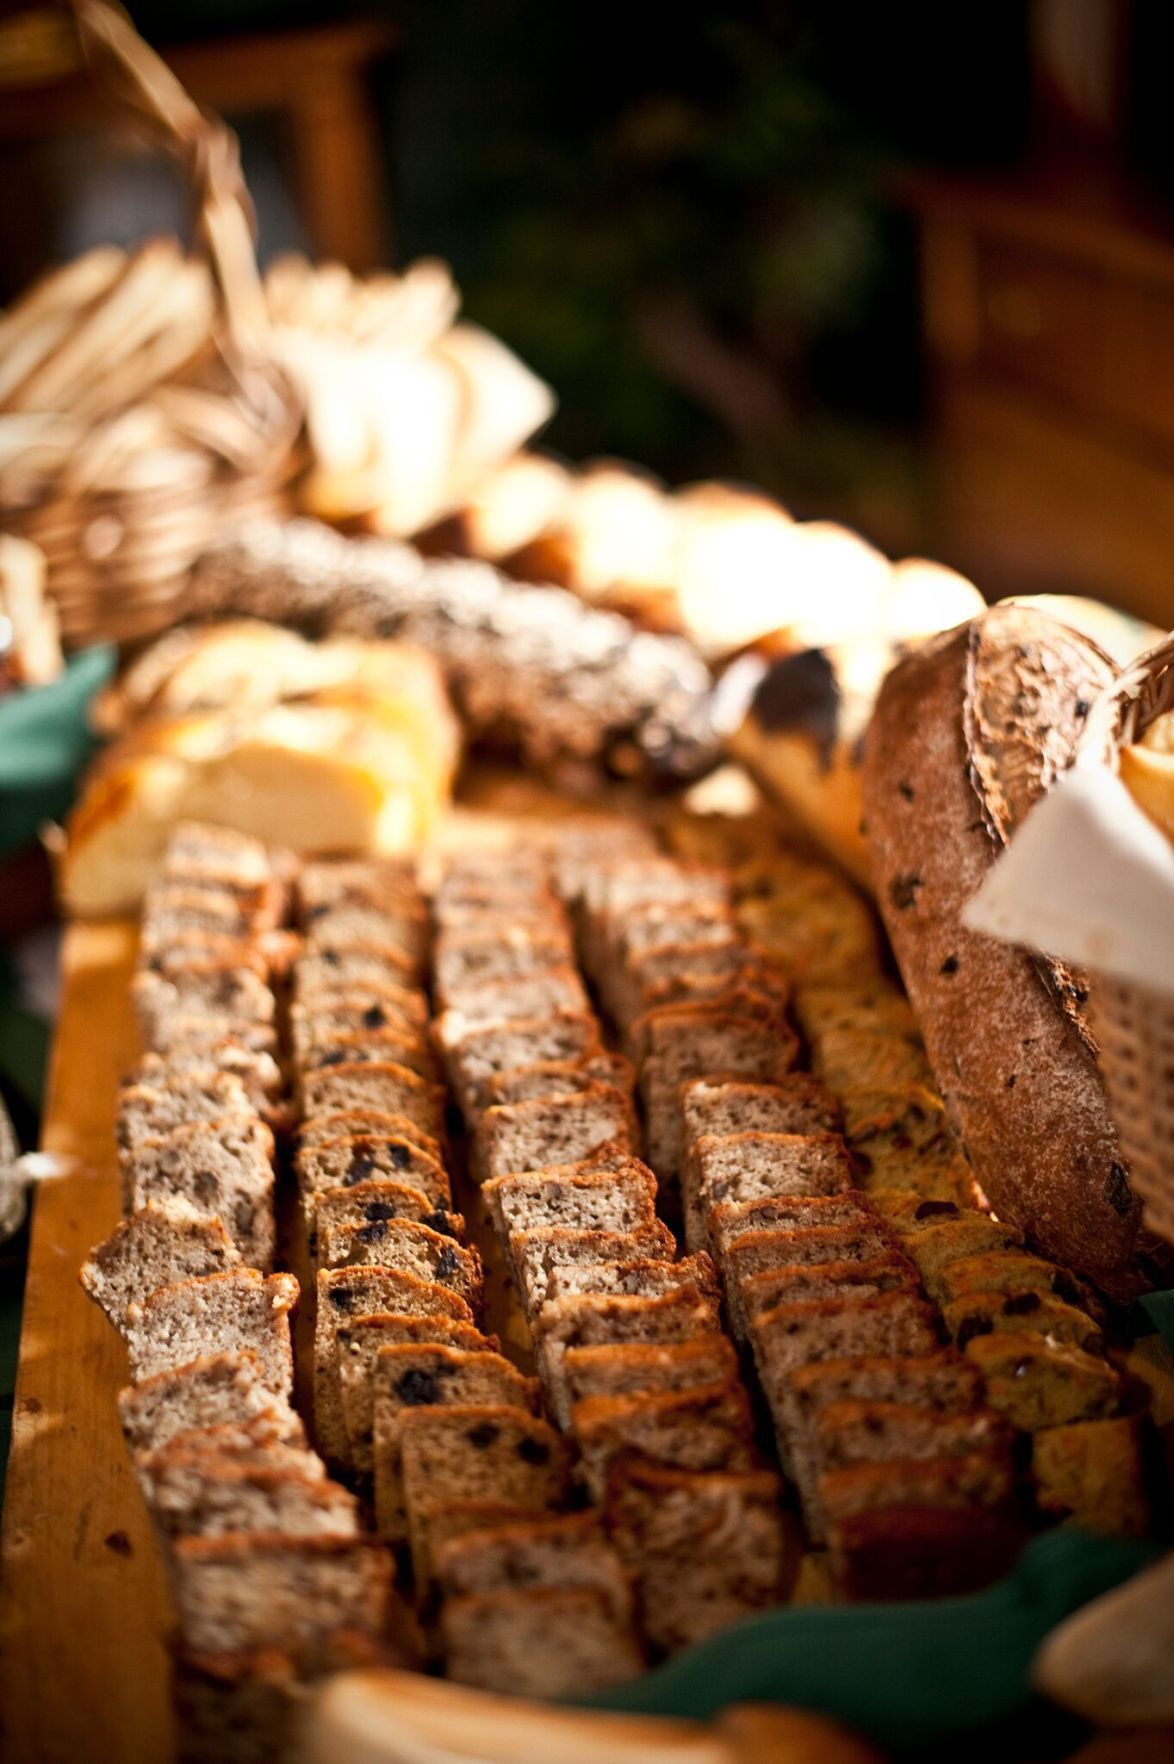 Breads at Easter buffet